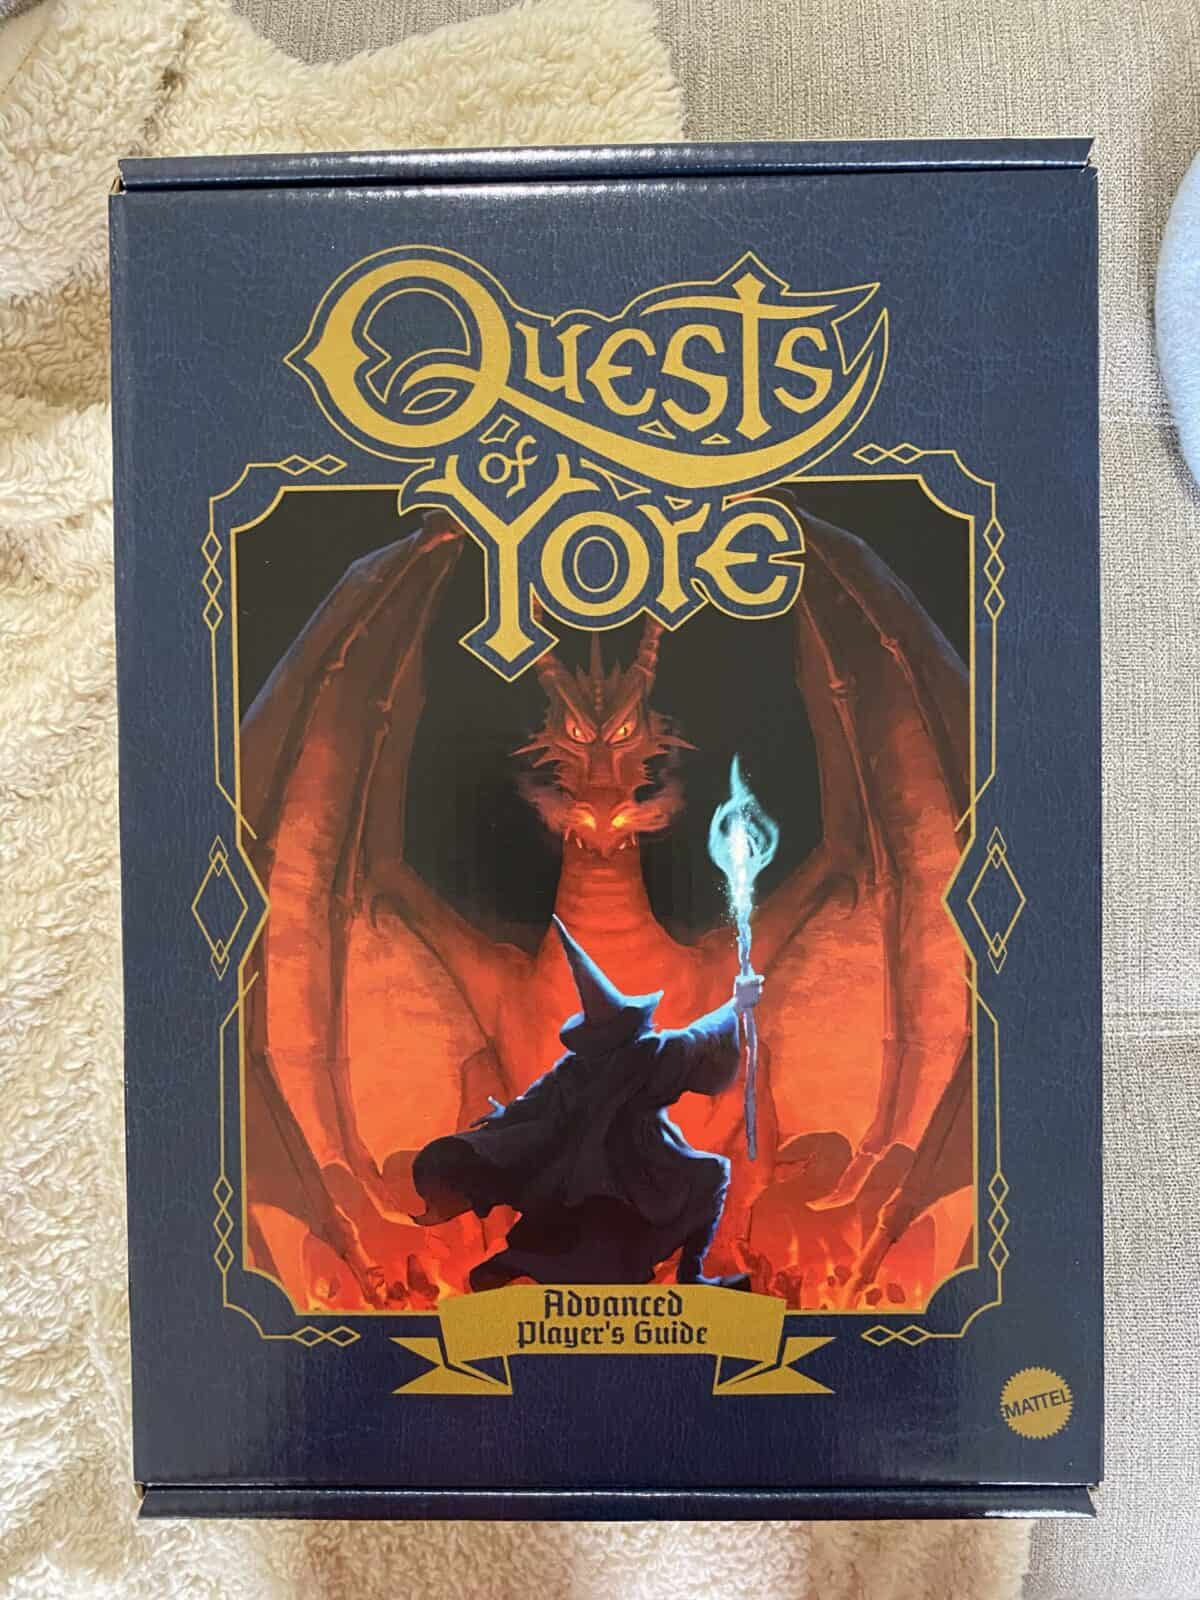 onward quests of yore